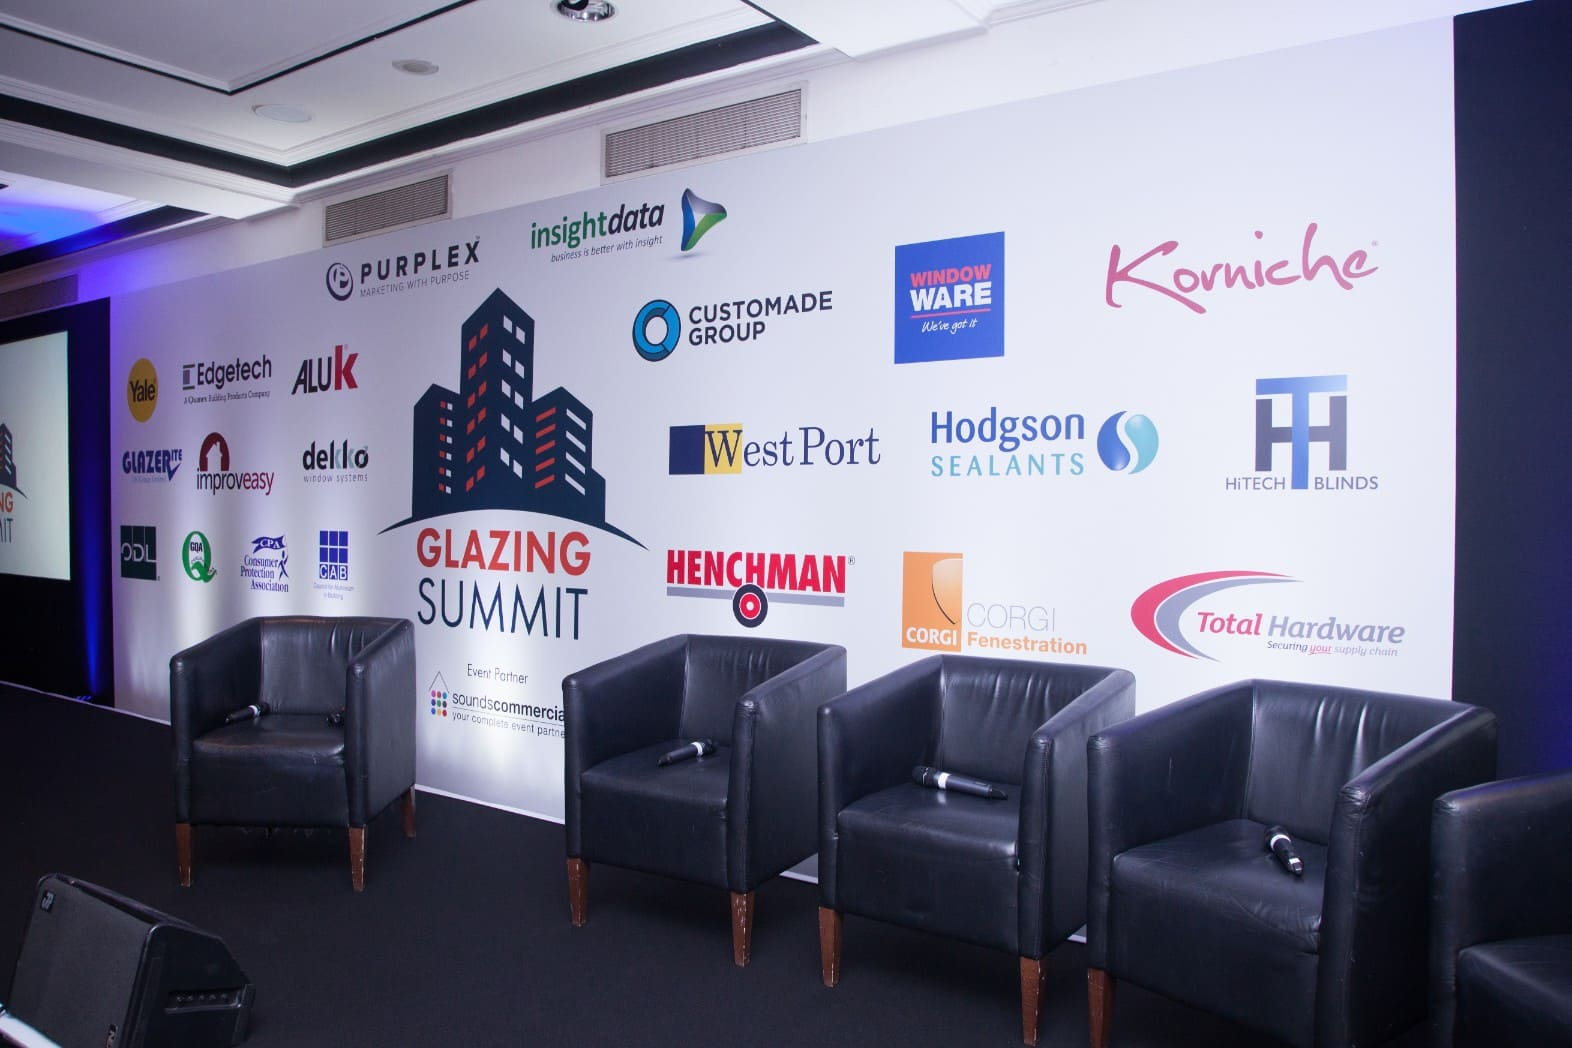 sponsor the Glazing Summit